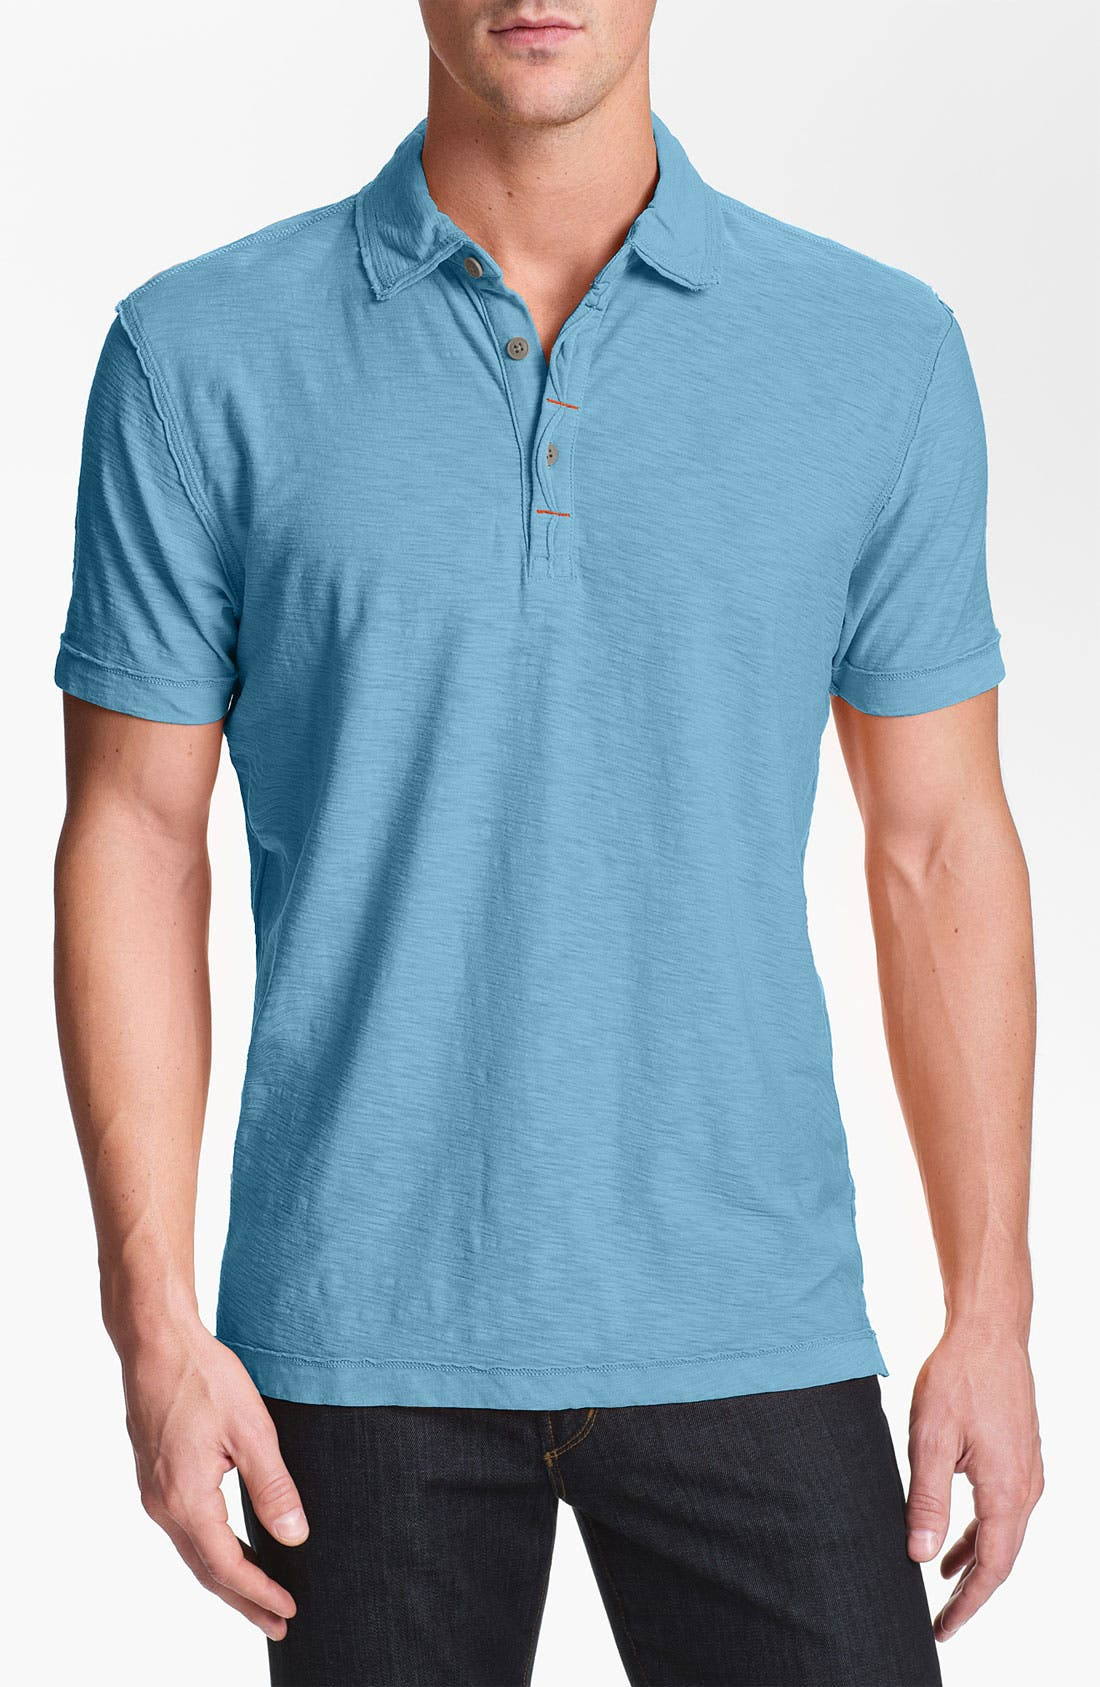 Alternate Image 1 Selected - Cutter & Buck 'Arbor Heights' Polo (Big & Tall)